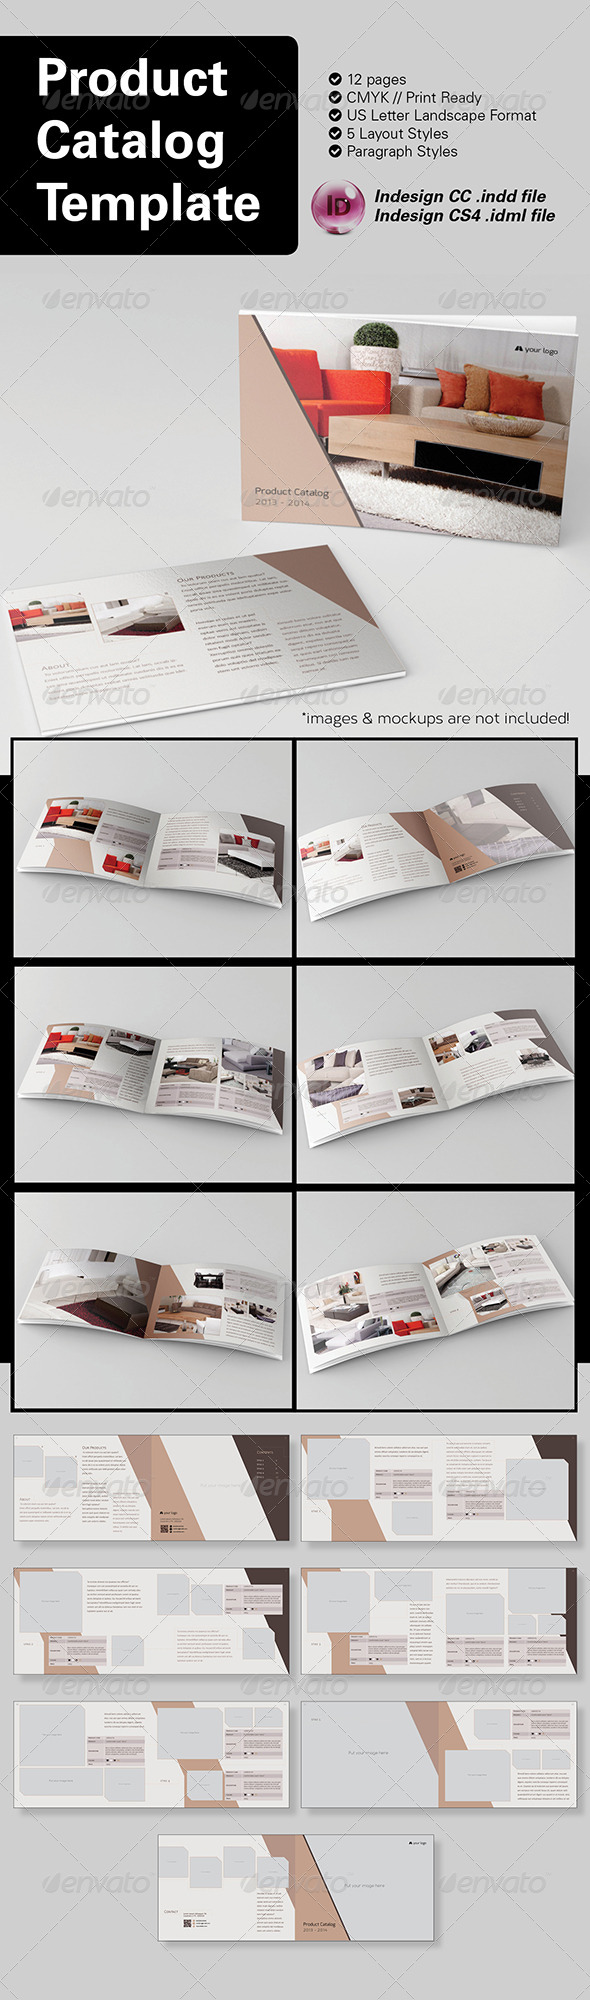 9 Awesome Templates for Designers   590px preview